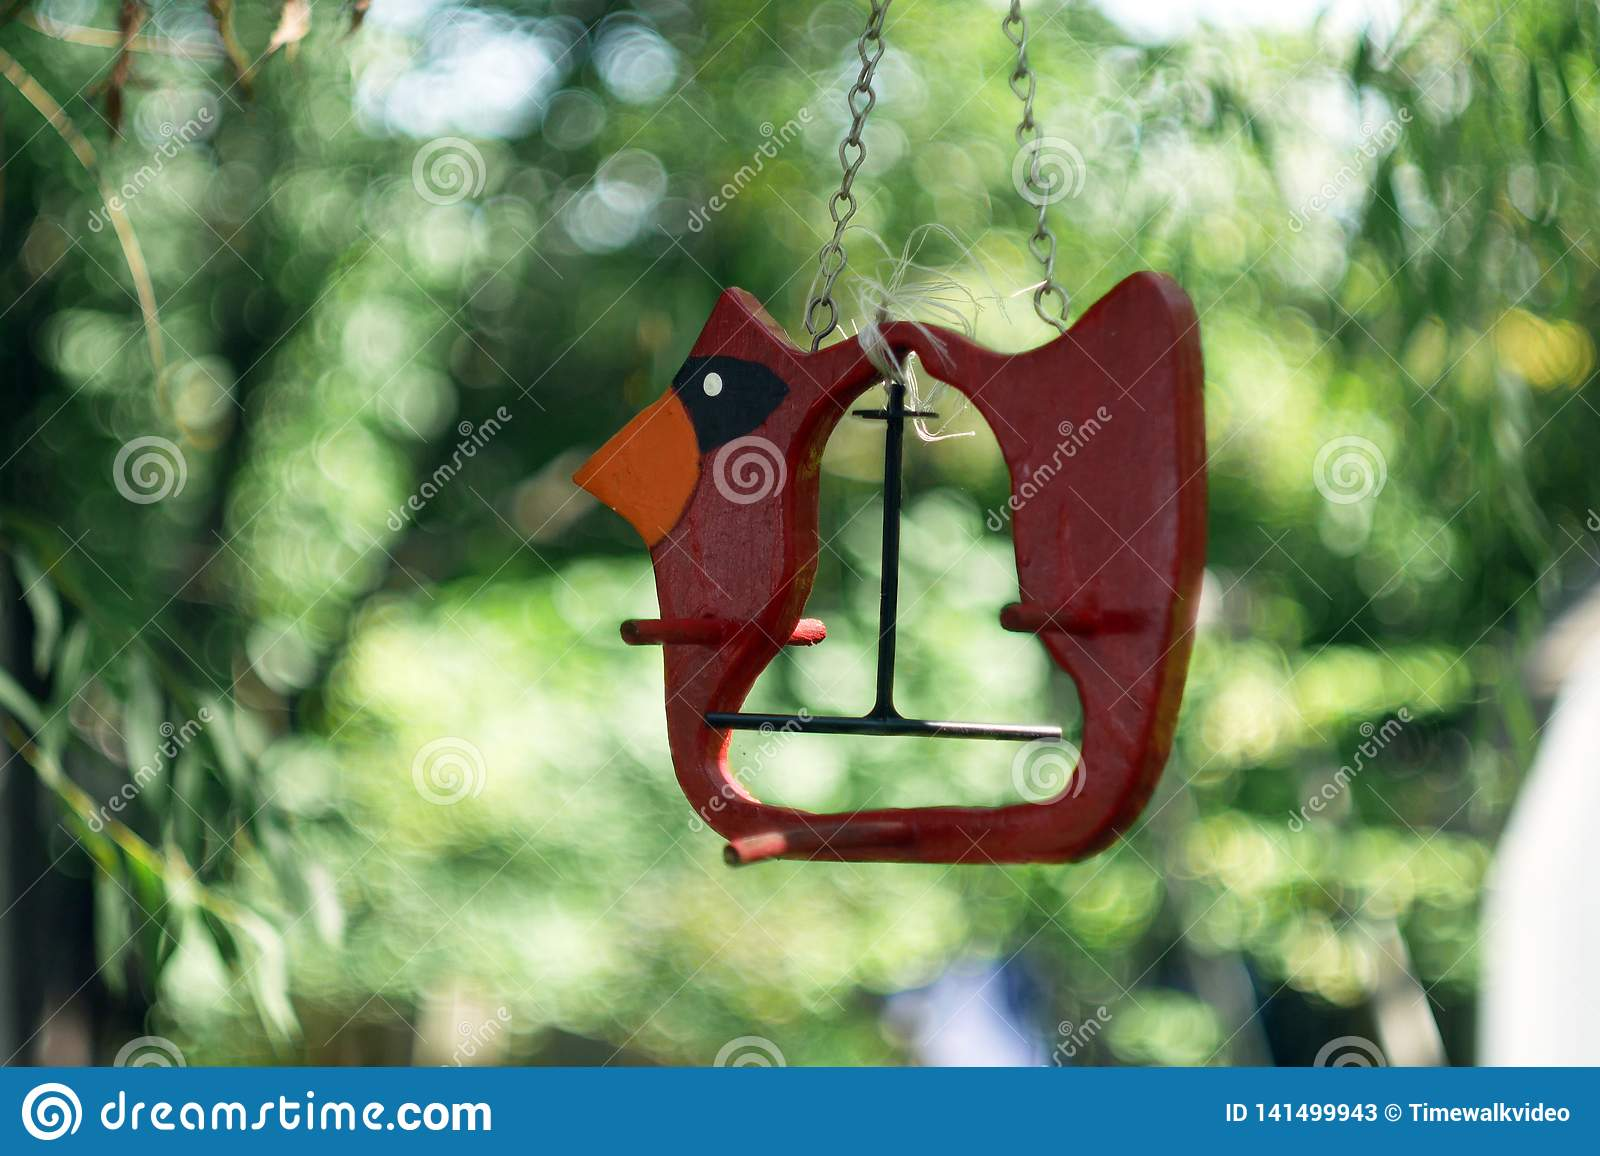 Empty Red bird feeder in the backyard with dreamy bokeh background